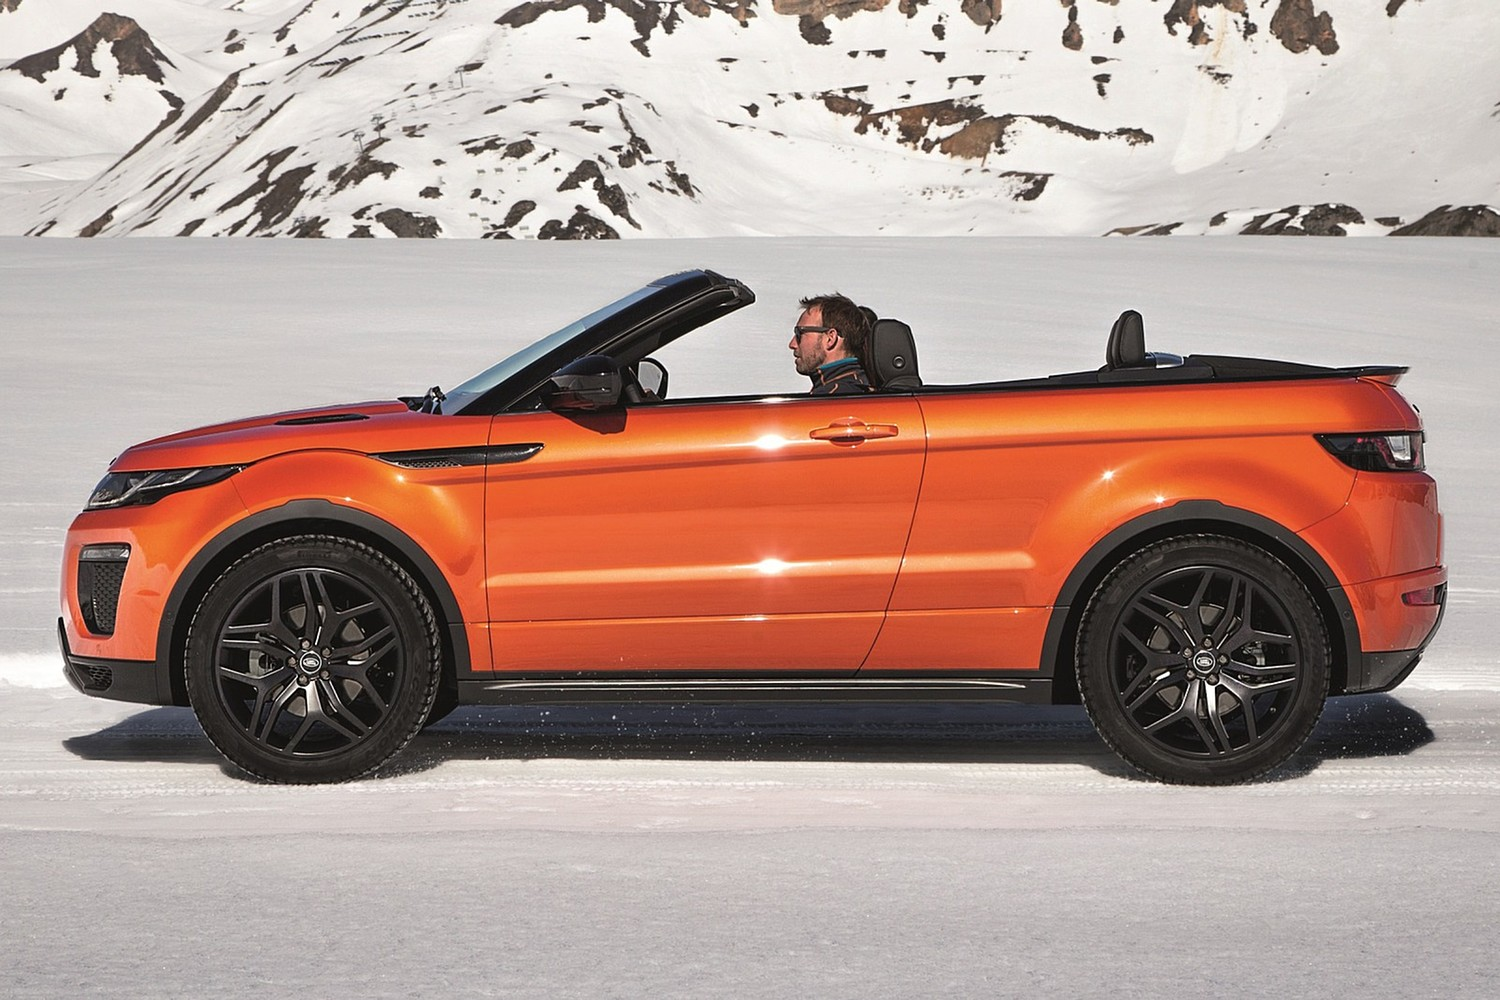 2017 Land Rover Range Rover Evoque HSE Dynamic Convertible SUV Exterior. Options Shown.